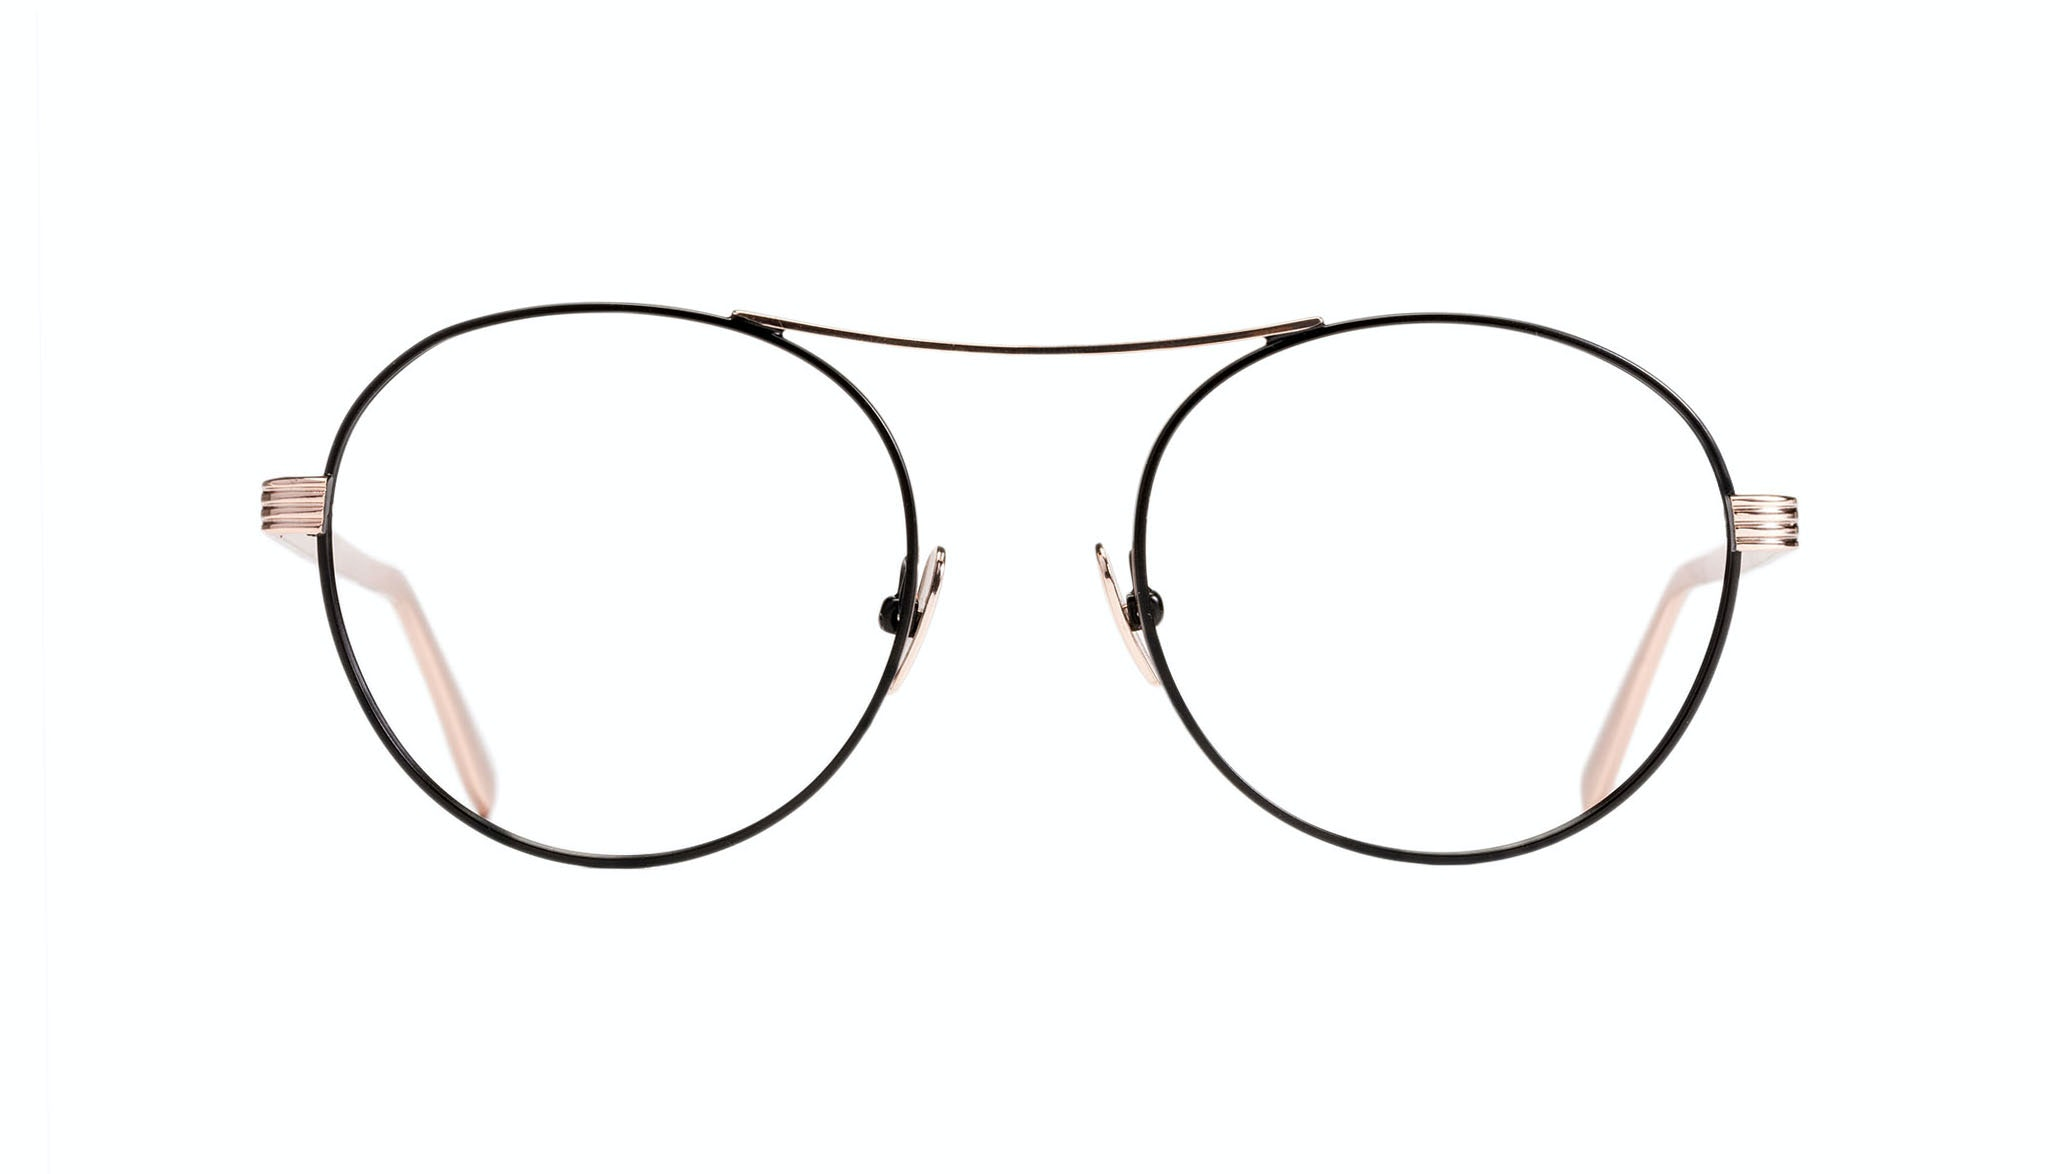 Affordable Fashion Glasses Round Eyeglasses Women Prize Deep Gold